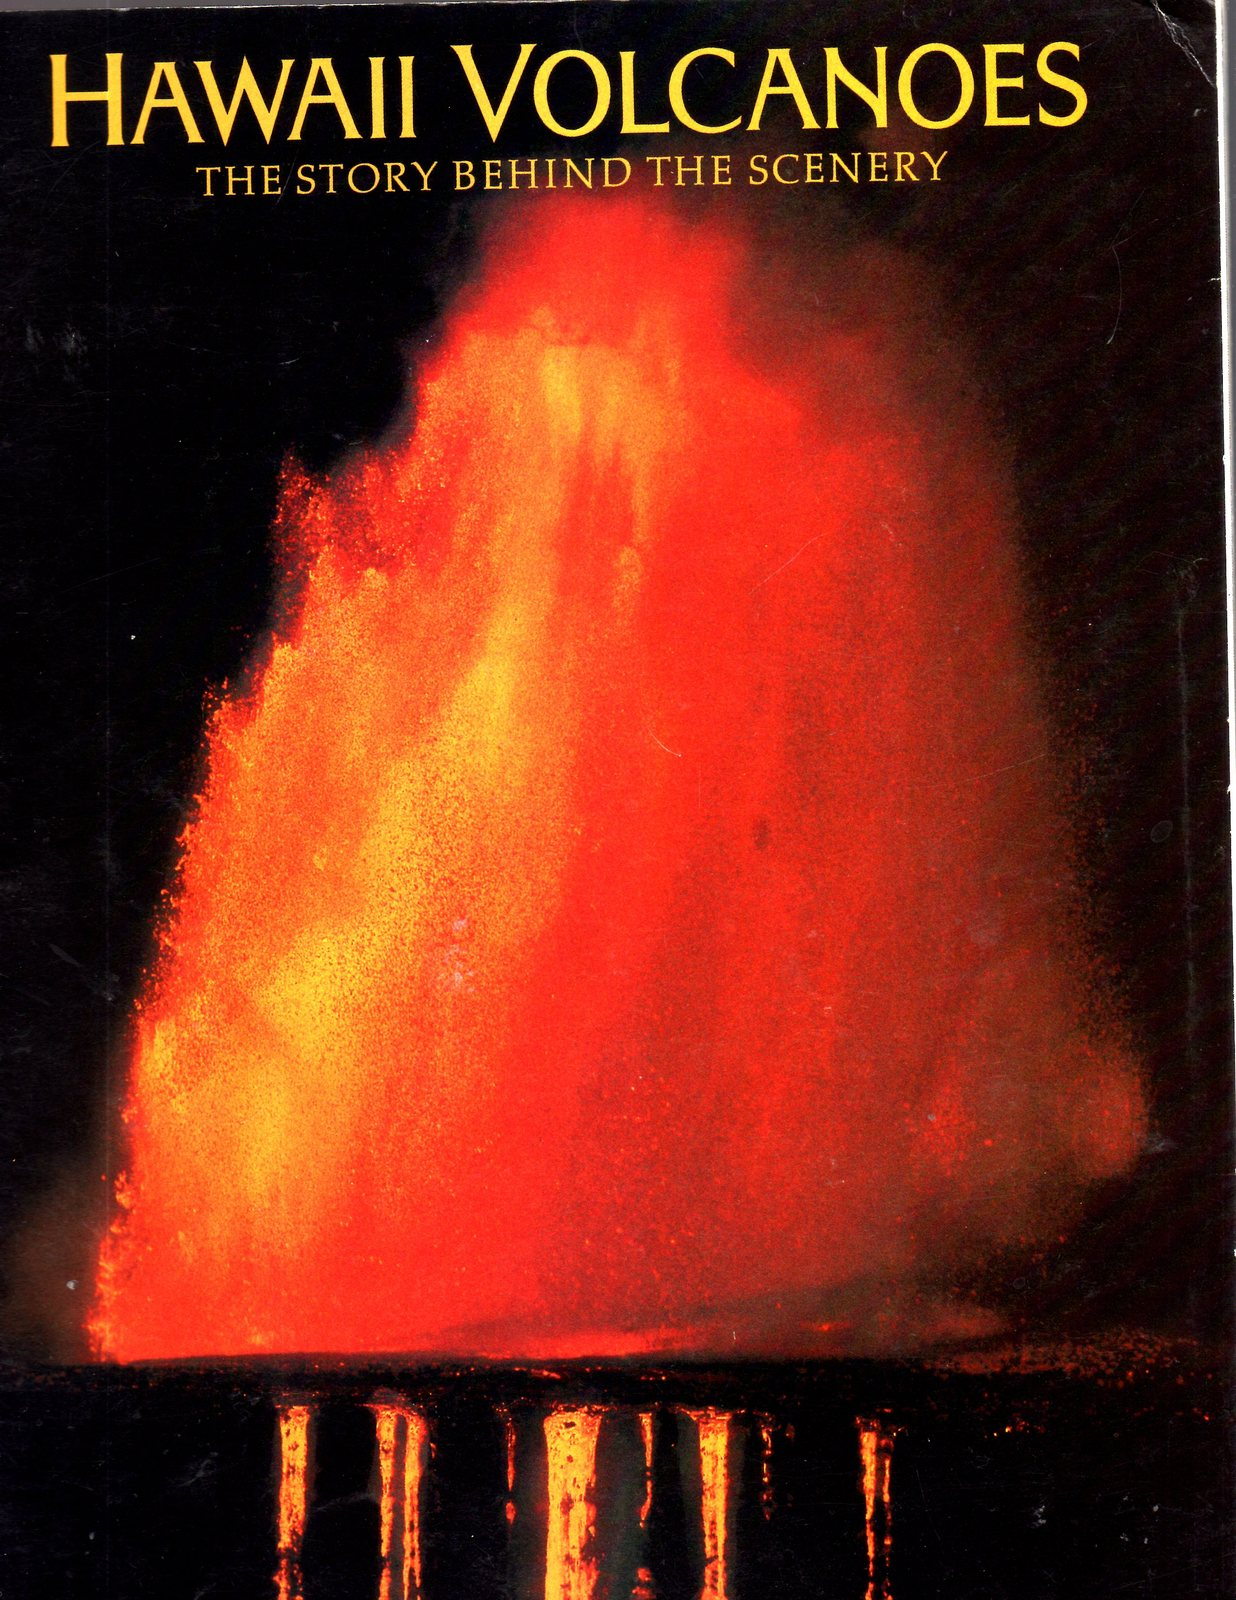 HAWAII VOLCANOES - The Story Behind The Scenery (Book)